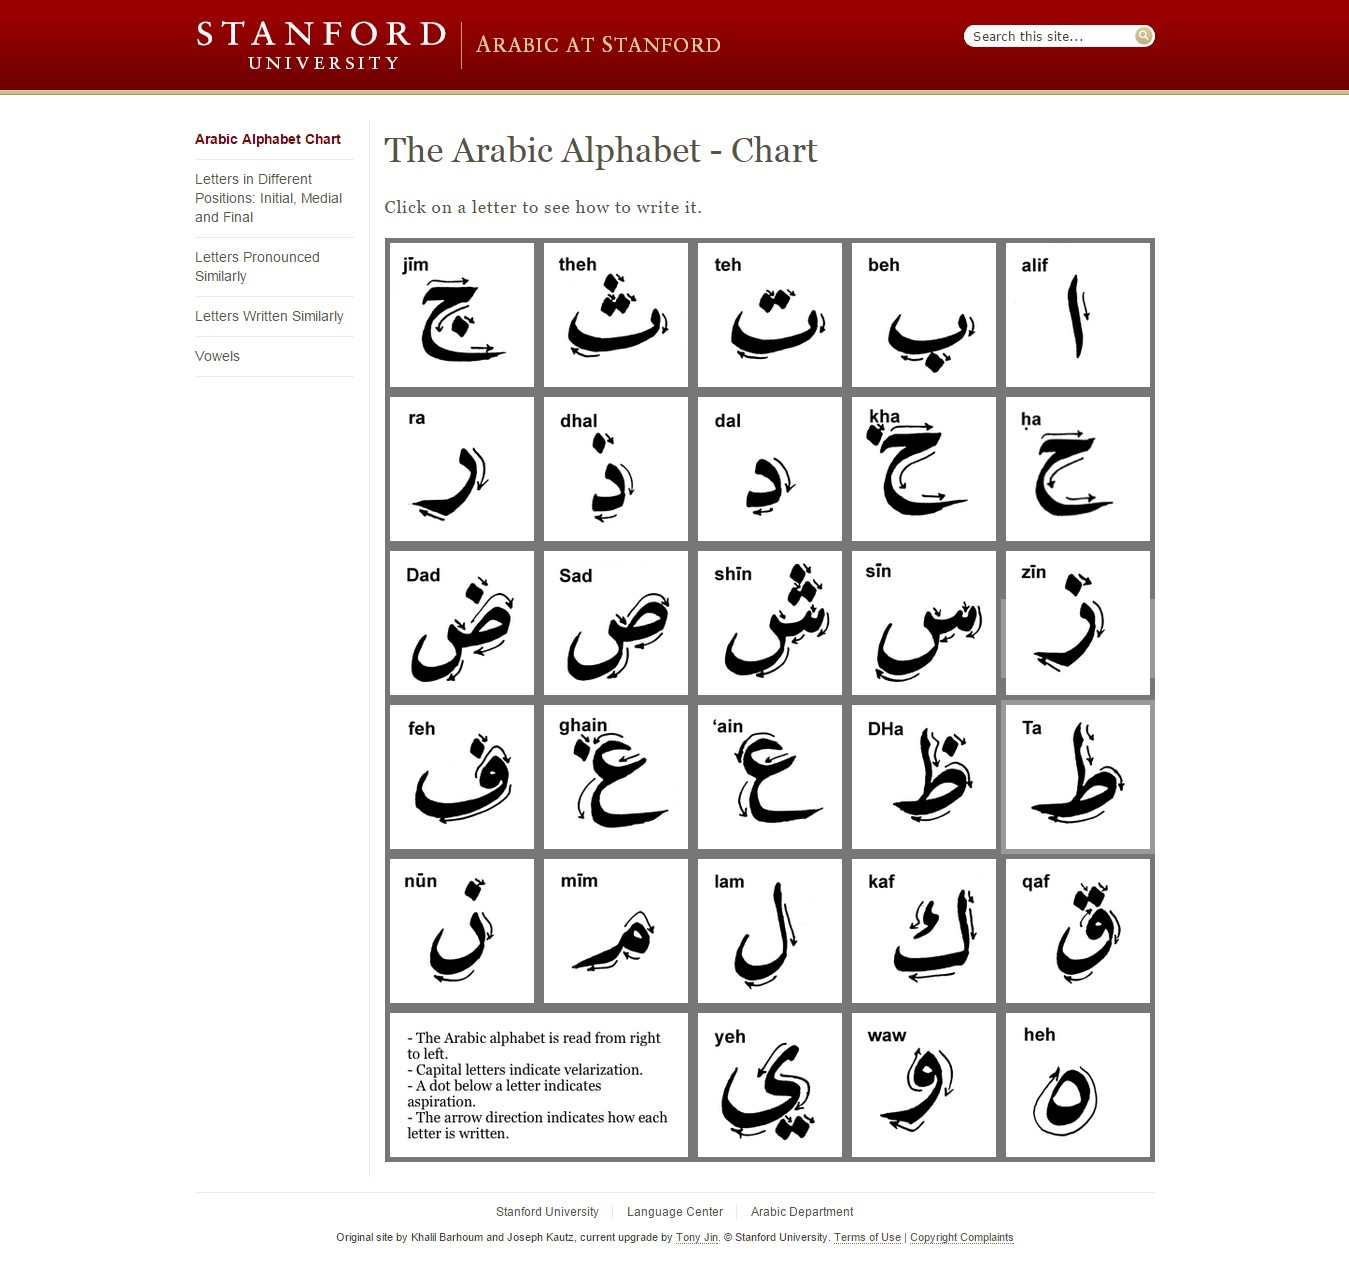 Hd wallpapers arabic alphabet worksheets for grade 1 futeiftcomess get free high quality hd wallpapers arabic alphabet worksheets for grade 1 robcynllc Gallery